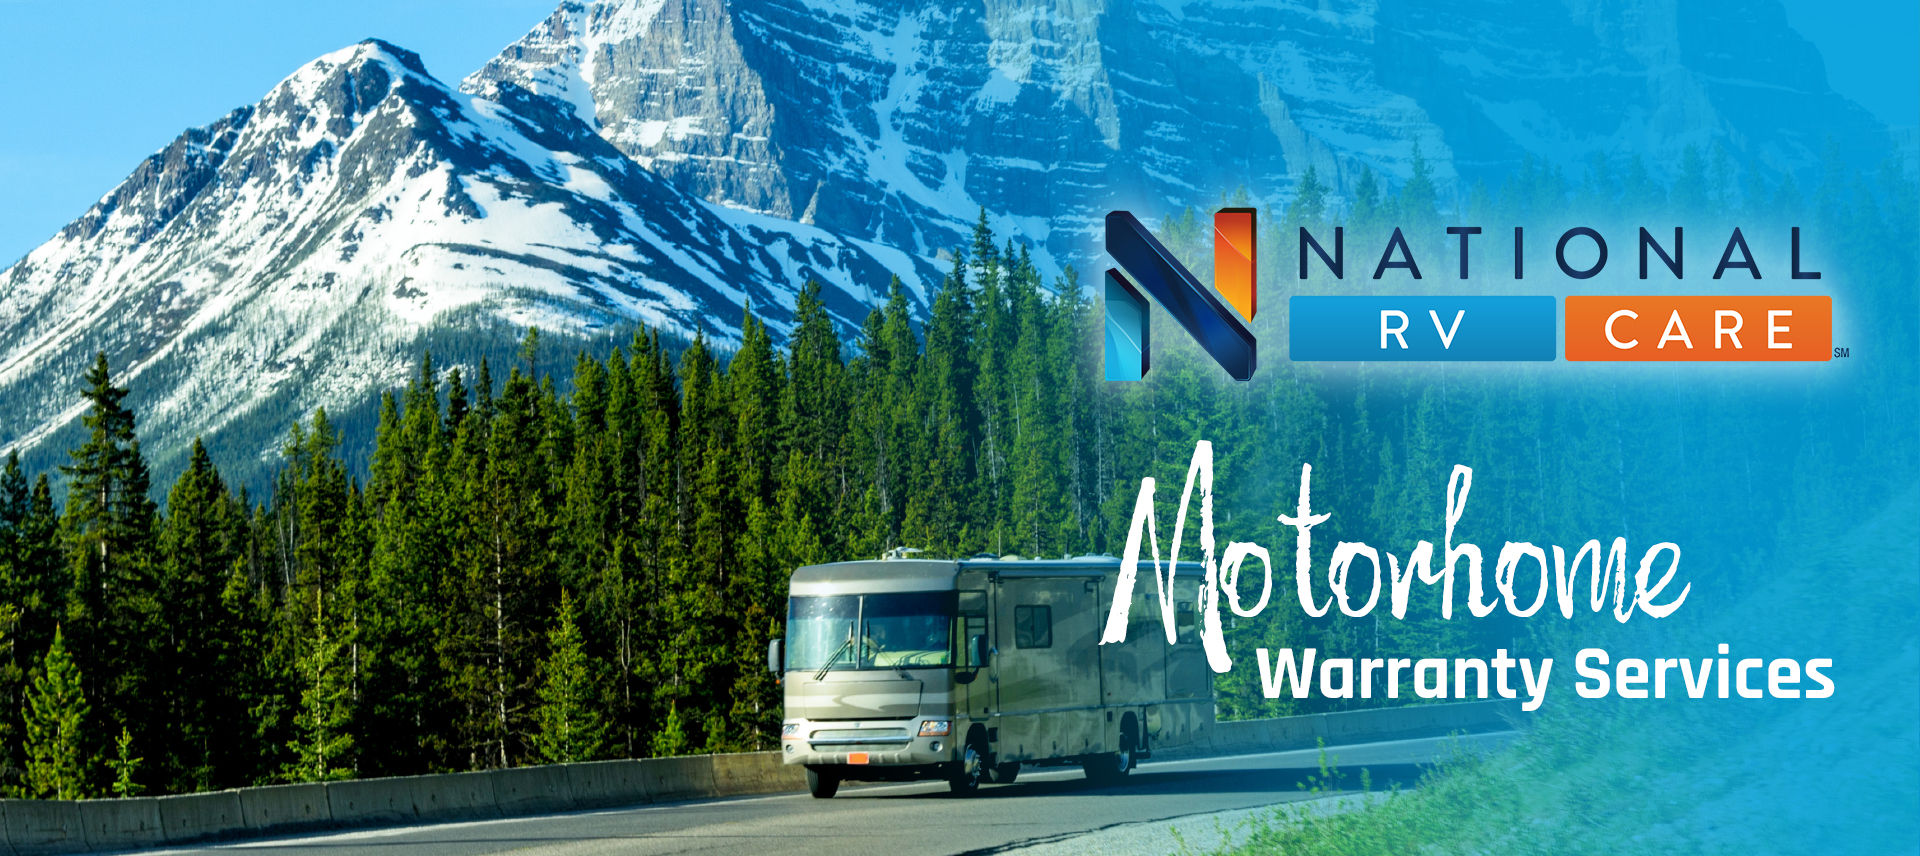 National RV Care | Motorhome Warranty Services | Travelcamp